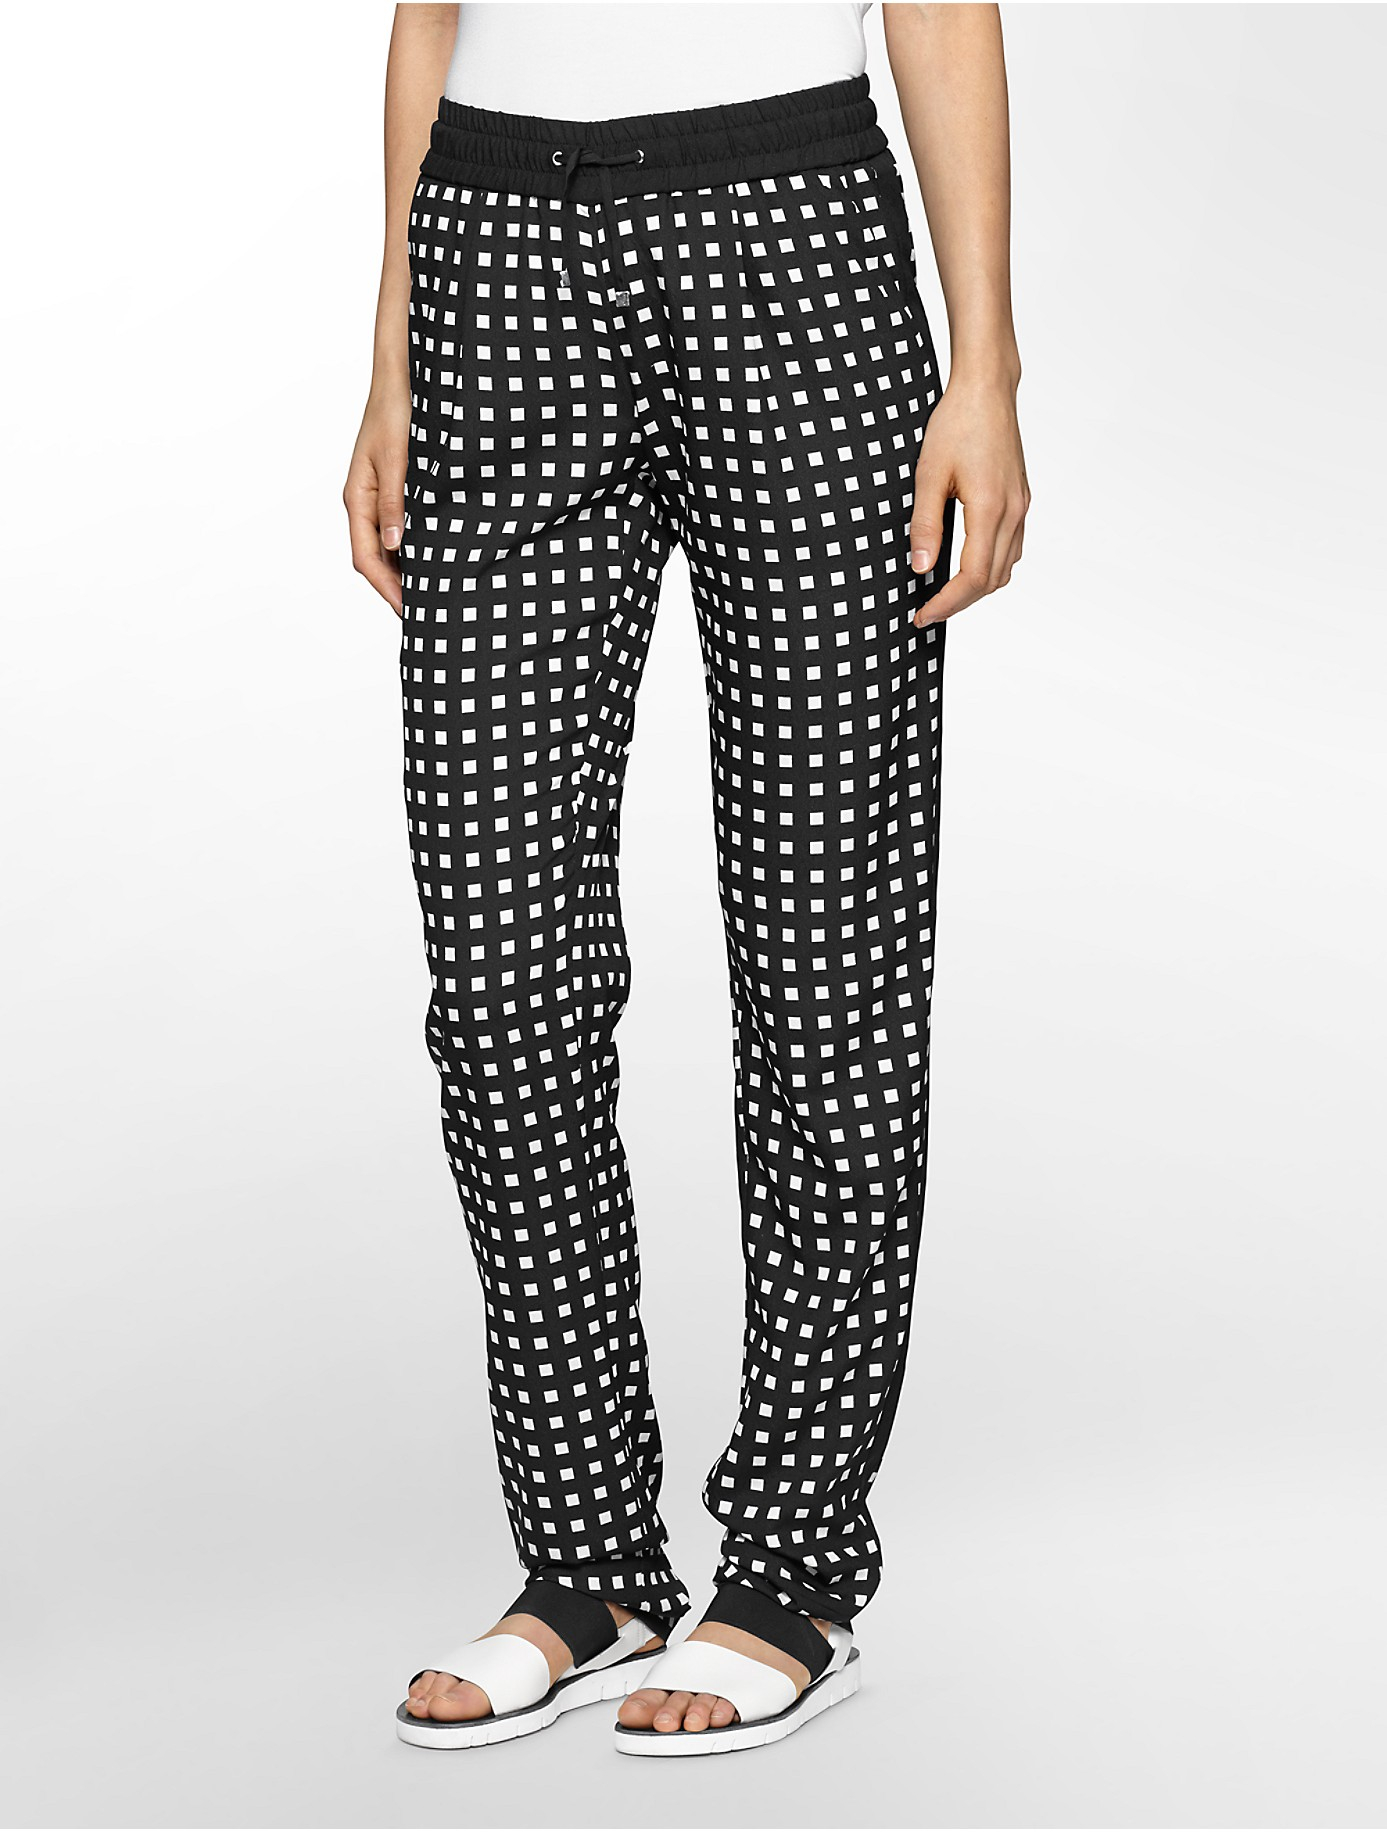 Calvin klein White Label Black   White Print Tapered Soft Pants in ...